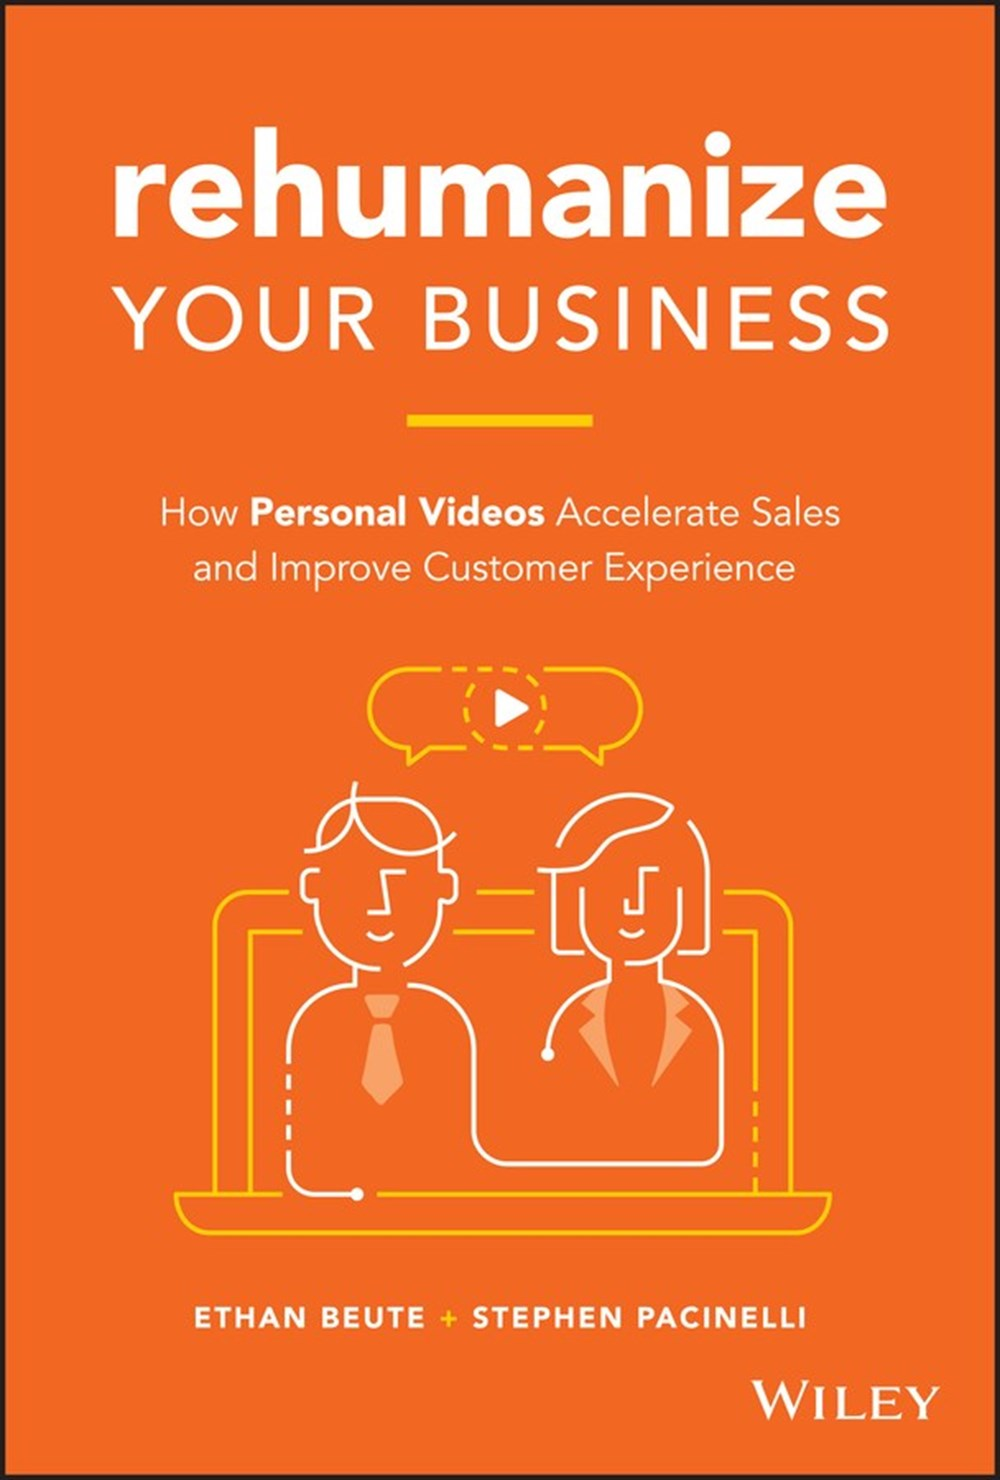 Rehumanize Your Business How Personal Videos Accelerate Sales and Improve Customer Experience